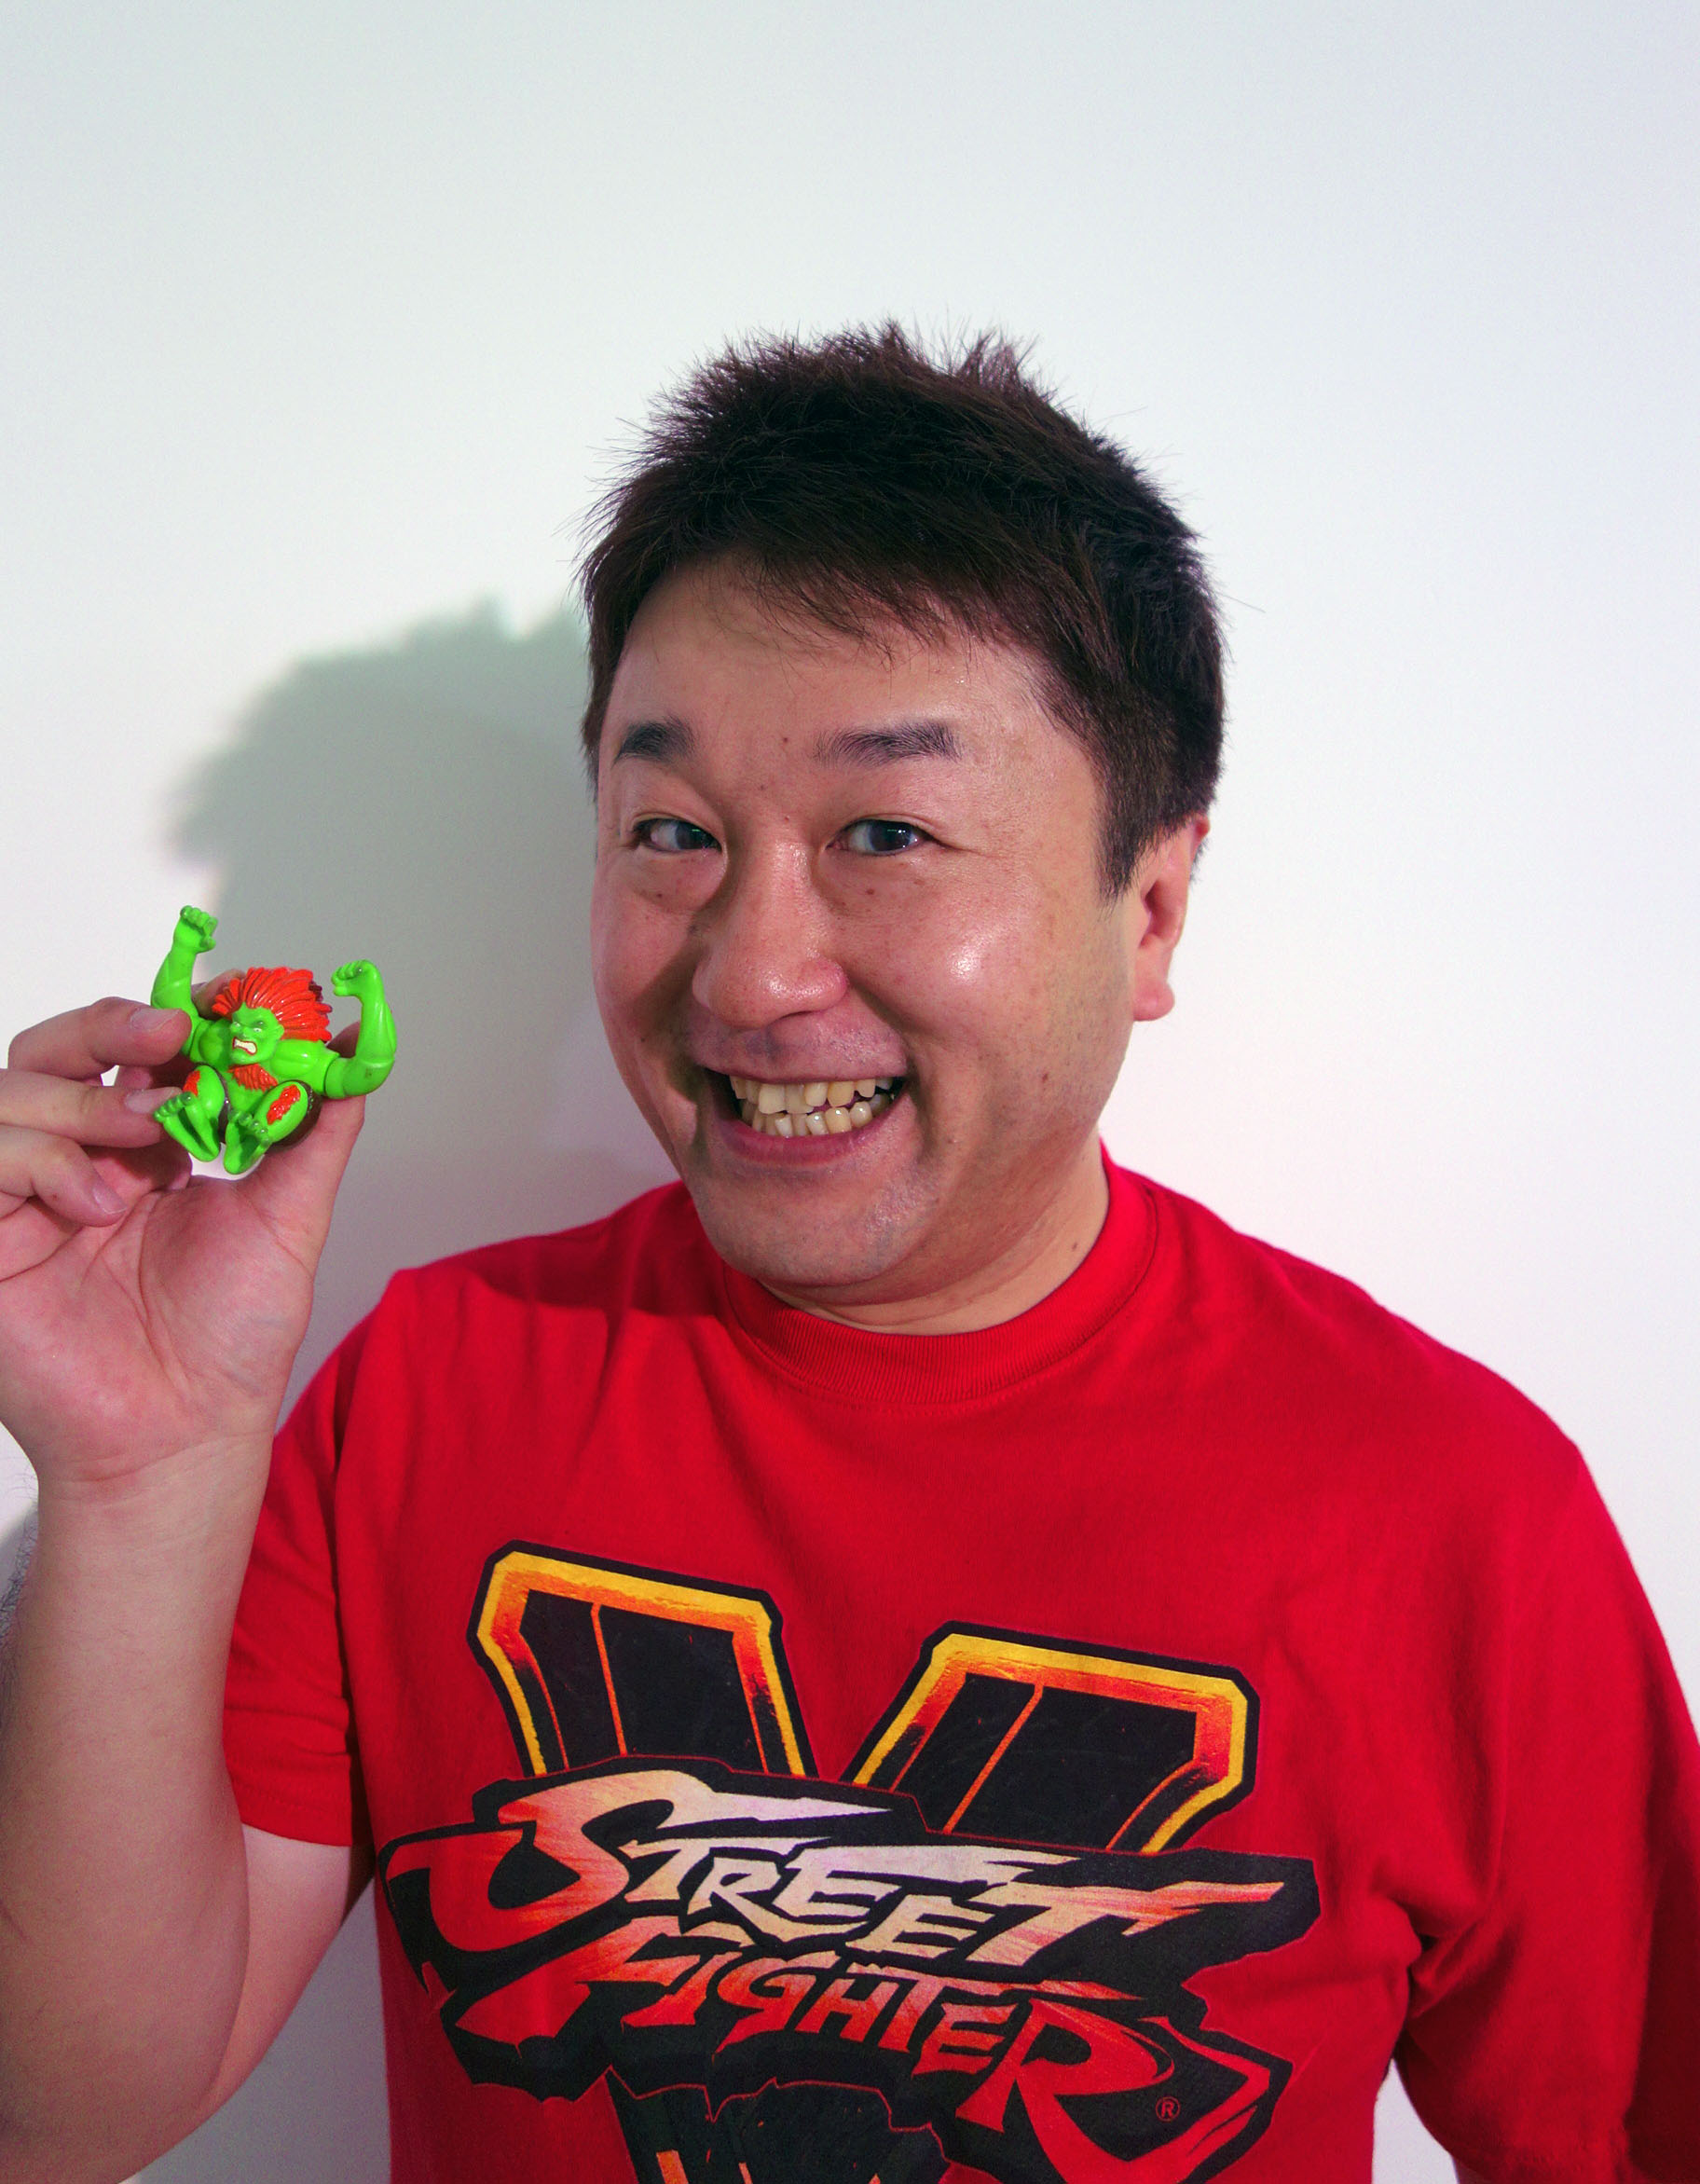 Street Fighter V Executive Producer Yoshinori Ono